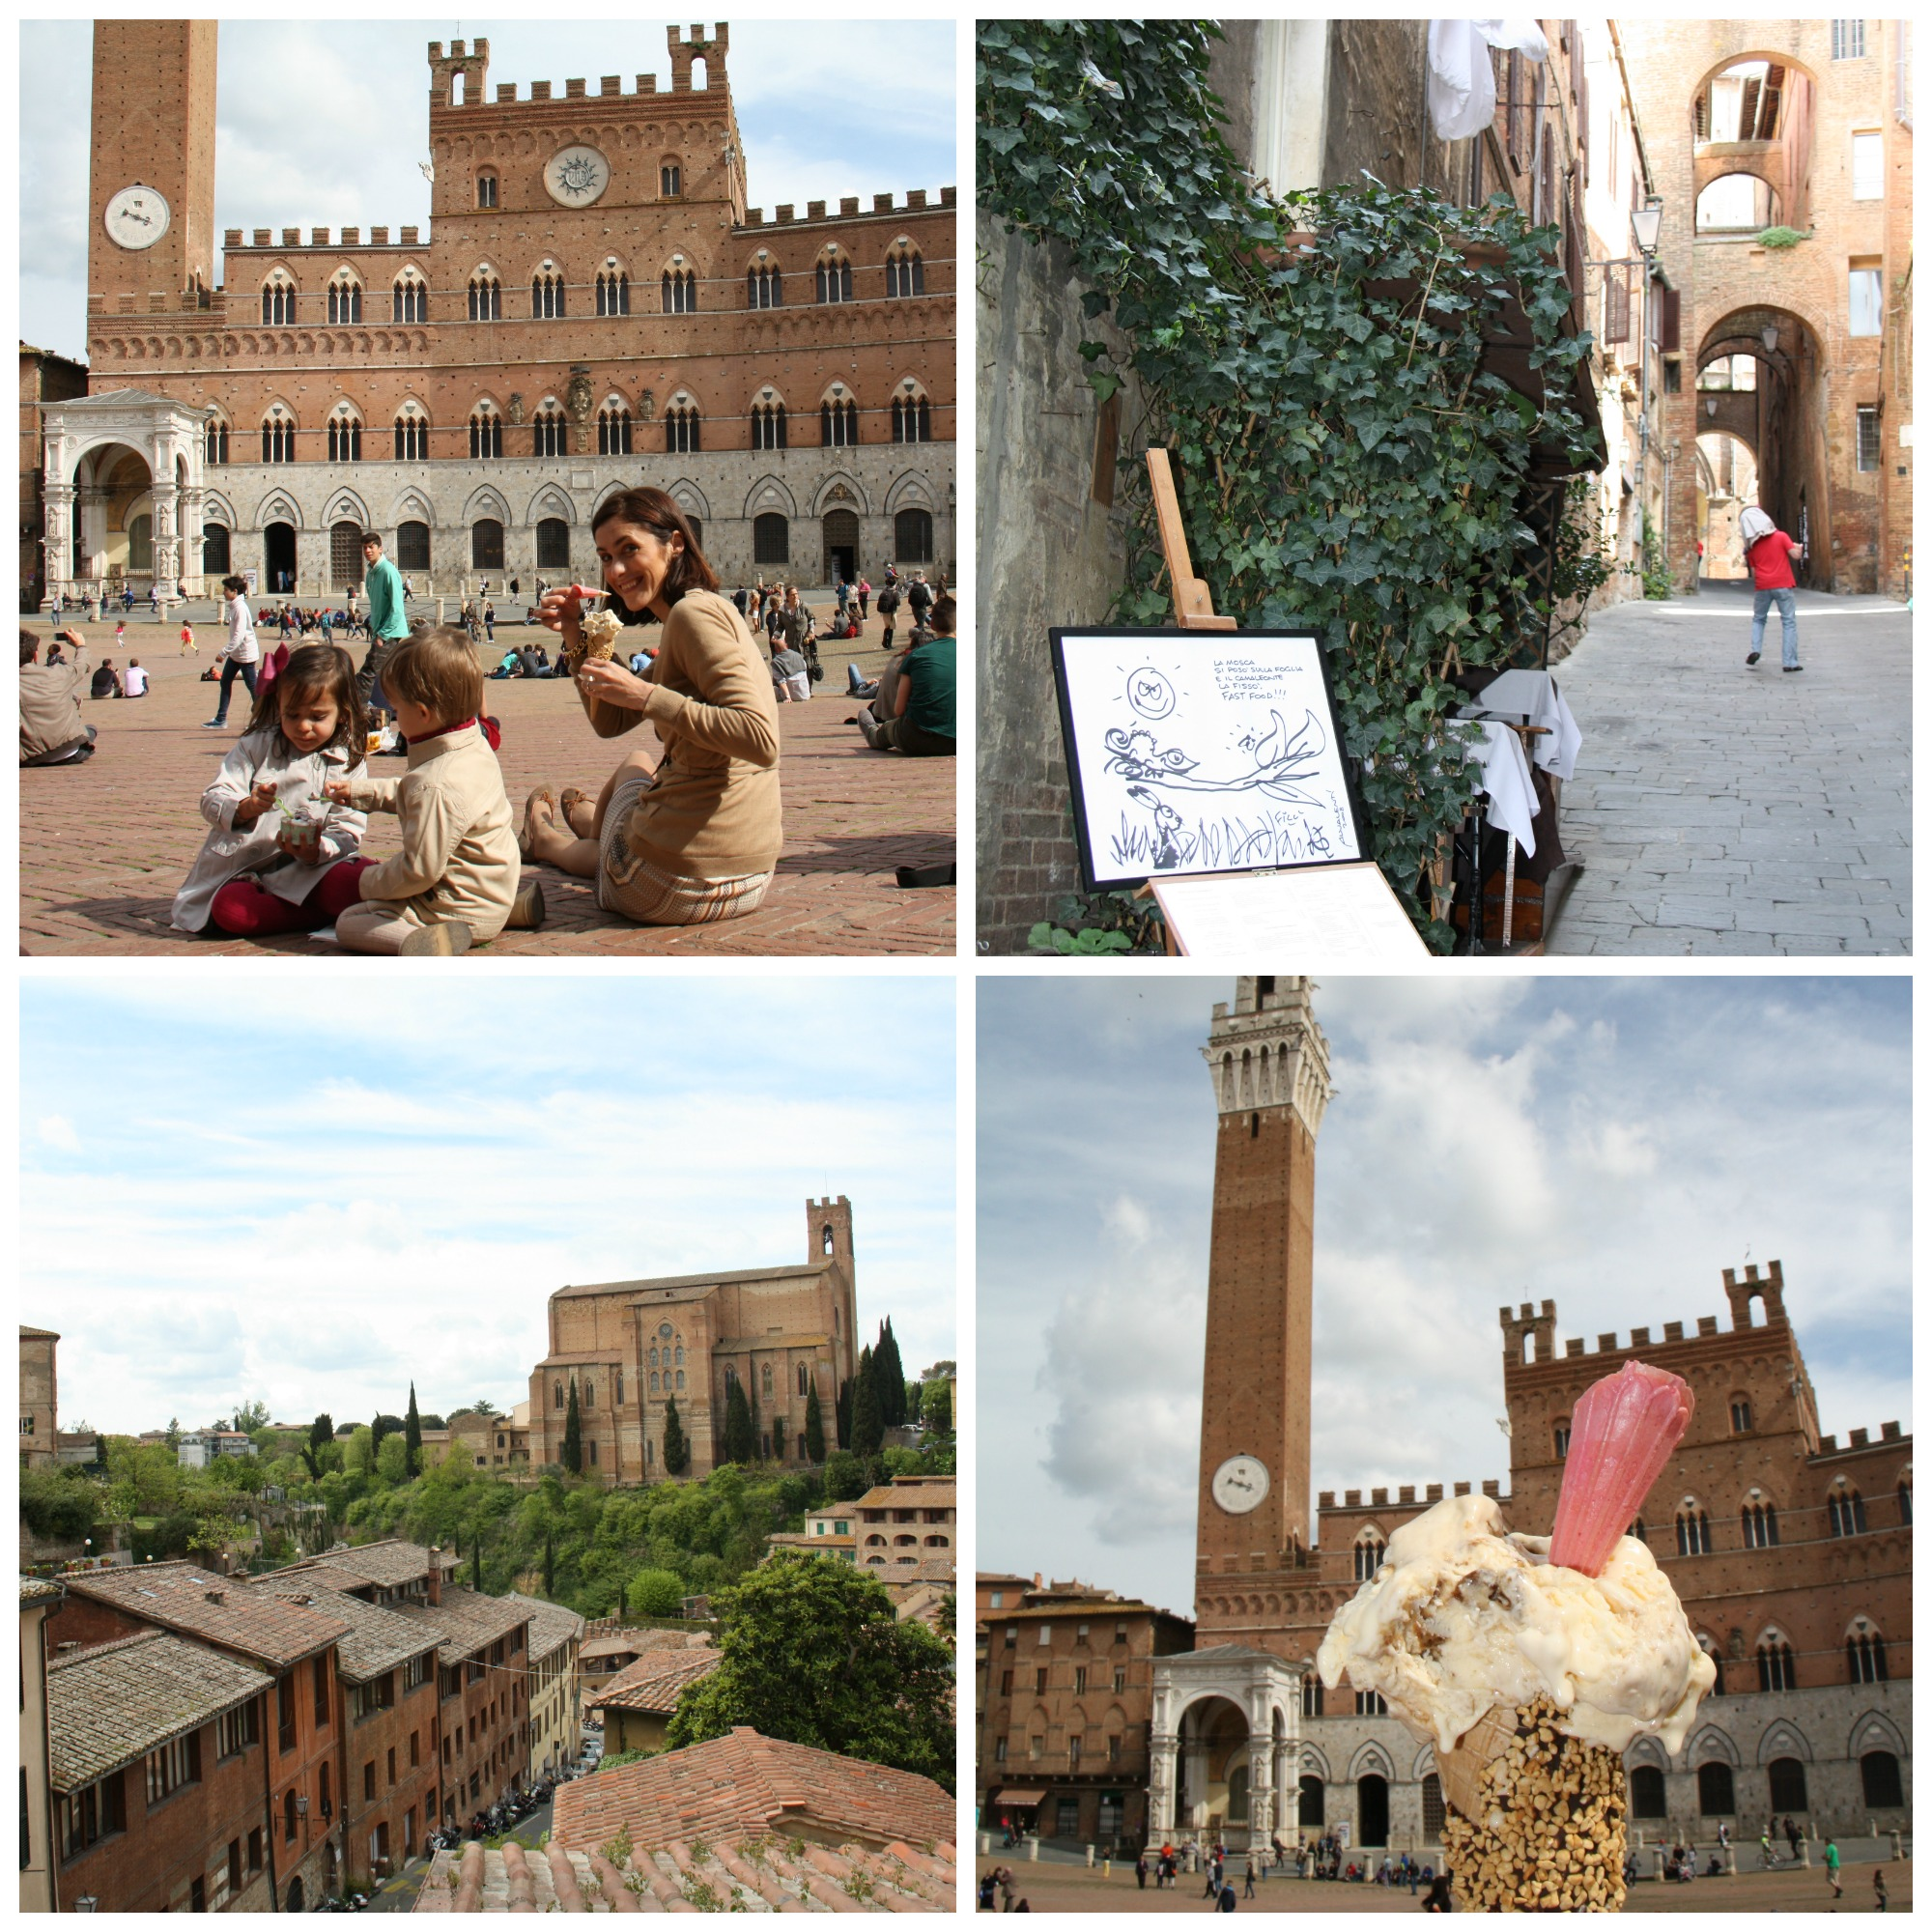 PicMonkey Collage.SIENA